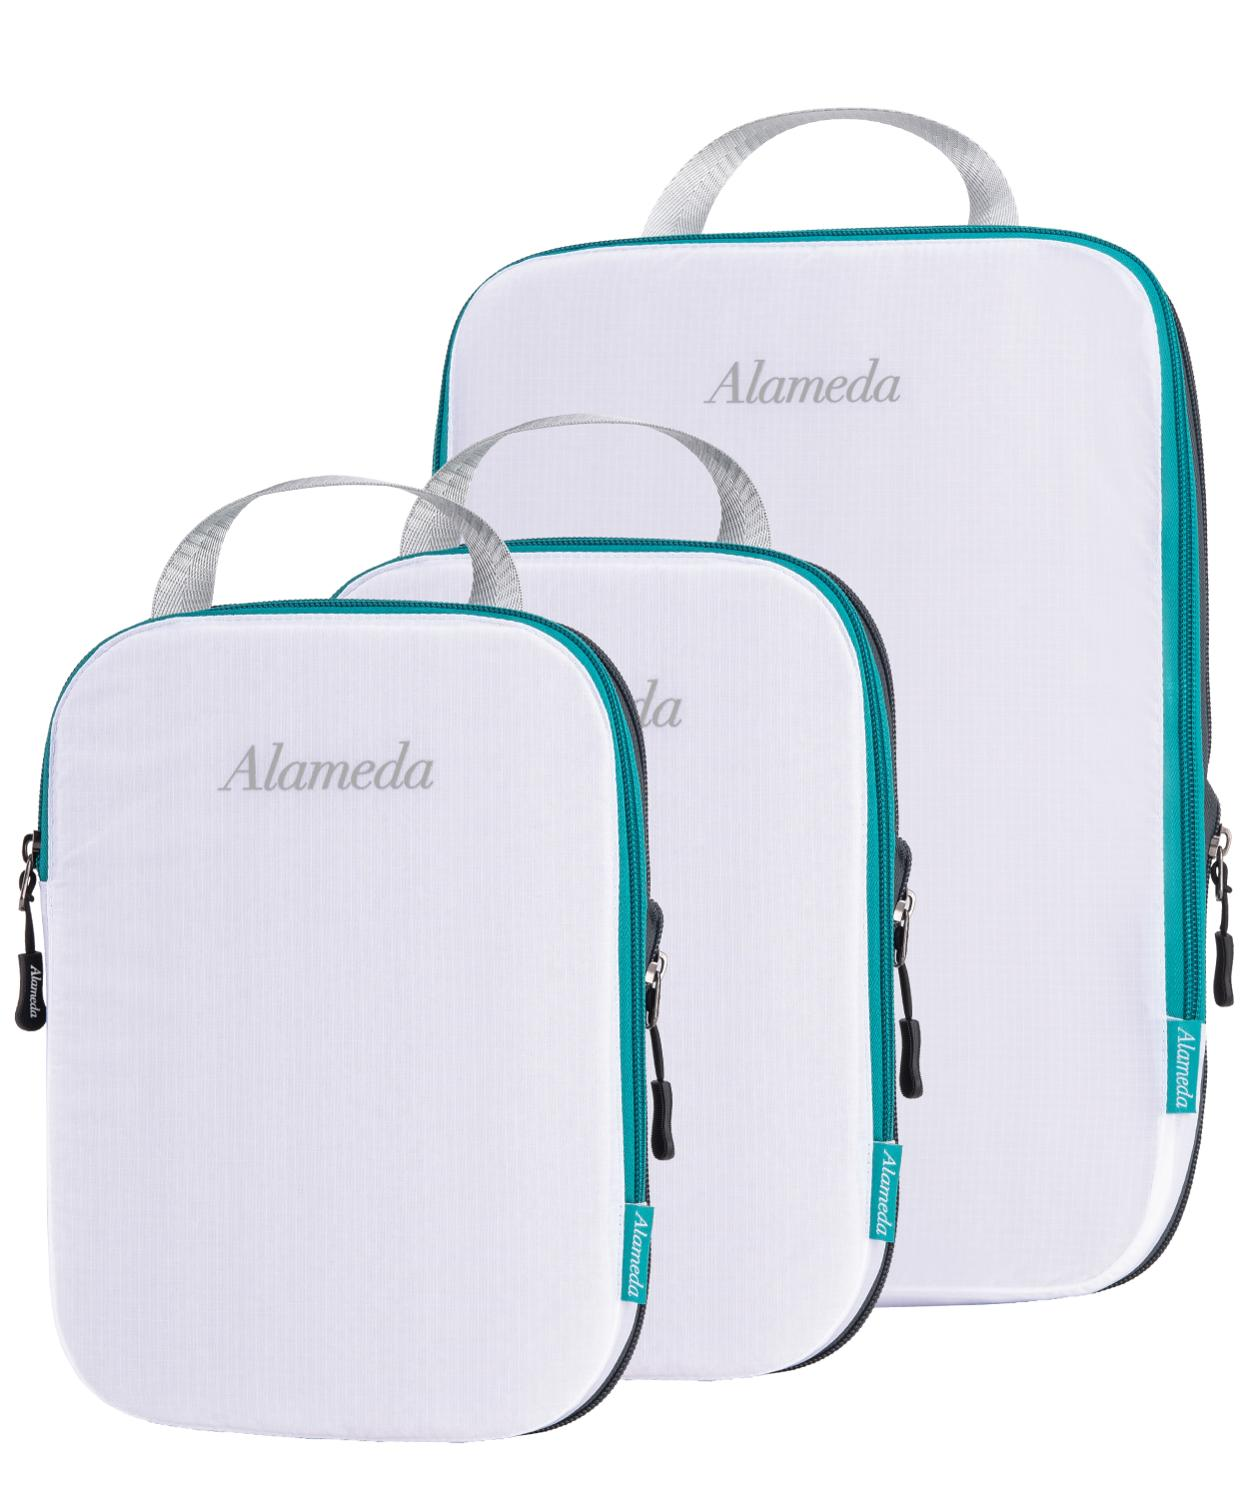 New Diaper Bag Inner Container Travel Packing Organizers 3pcs Compression Packing Cubes for Carryon Luggage Baby Care Outdoors wall shelf for tea pots